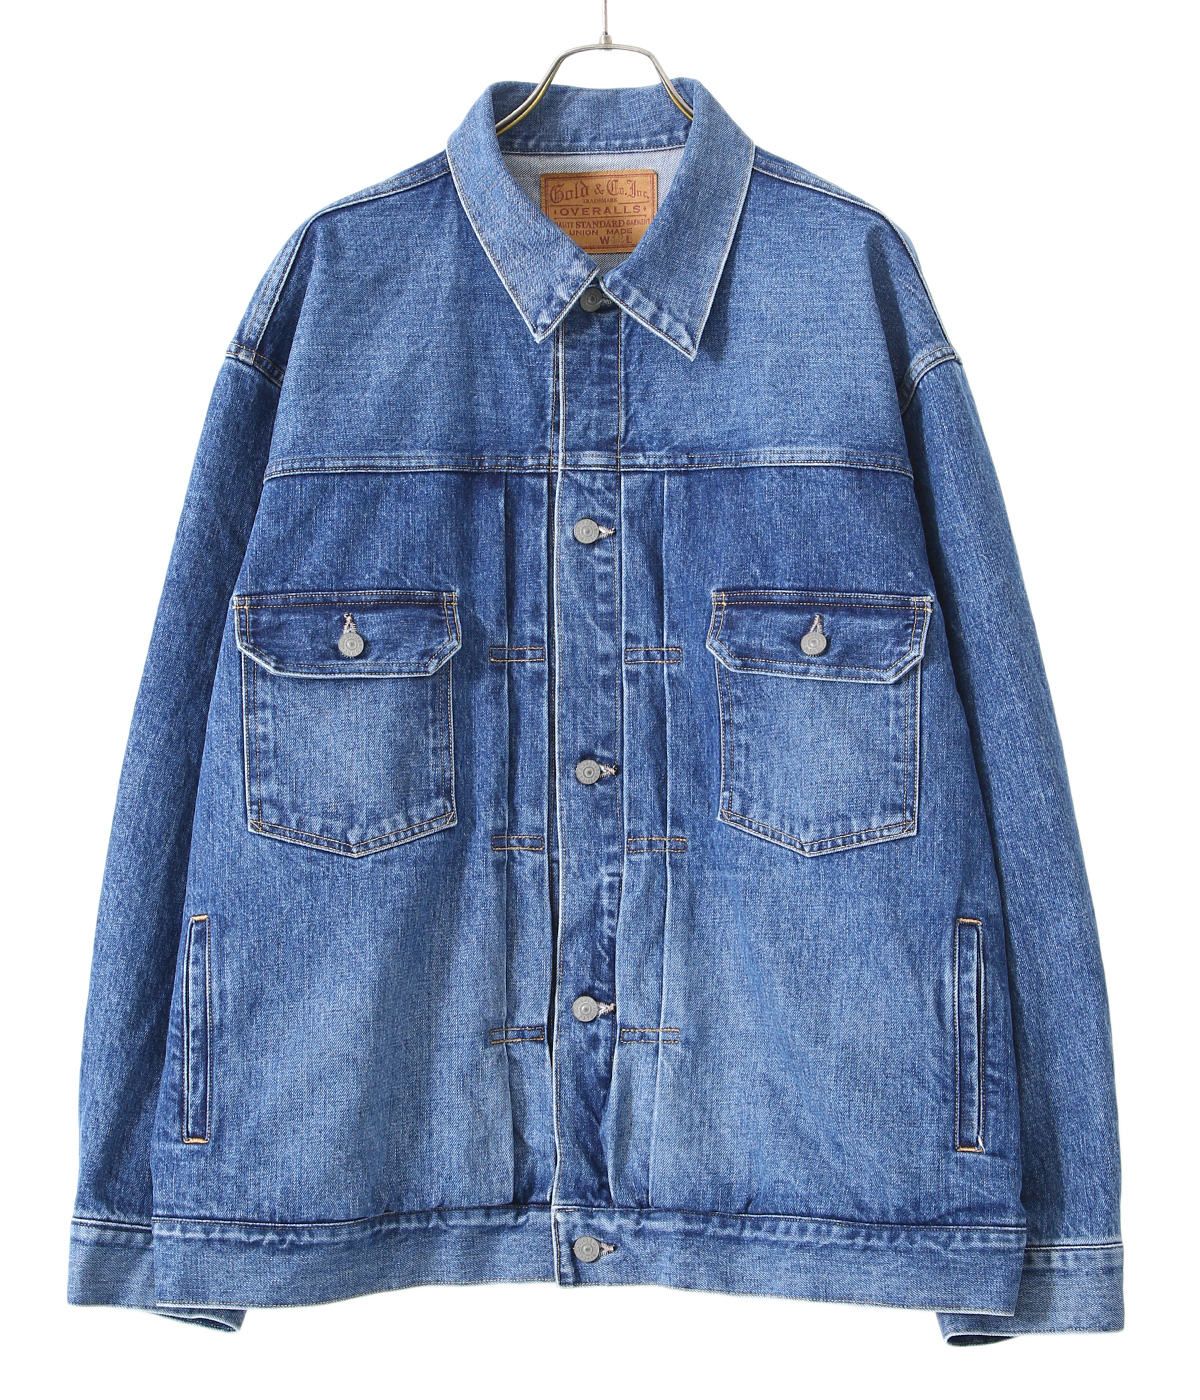 【予約】14oz. DENIM JACKET AGED MODEL